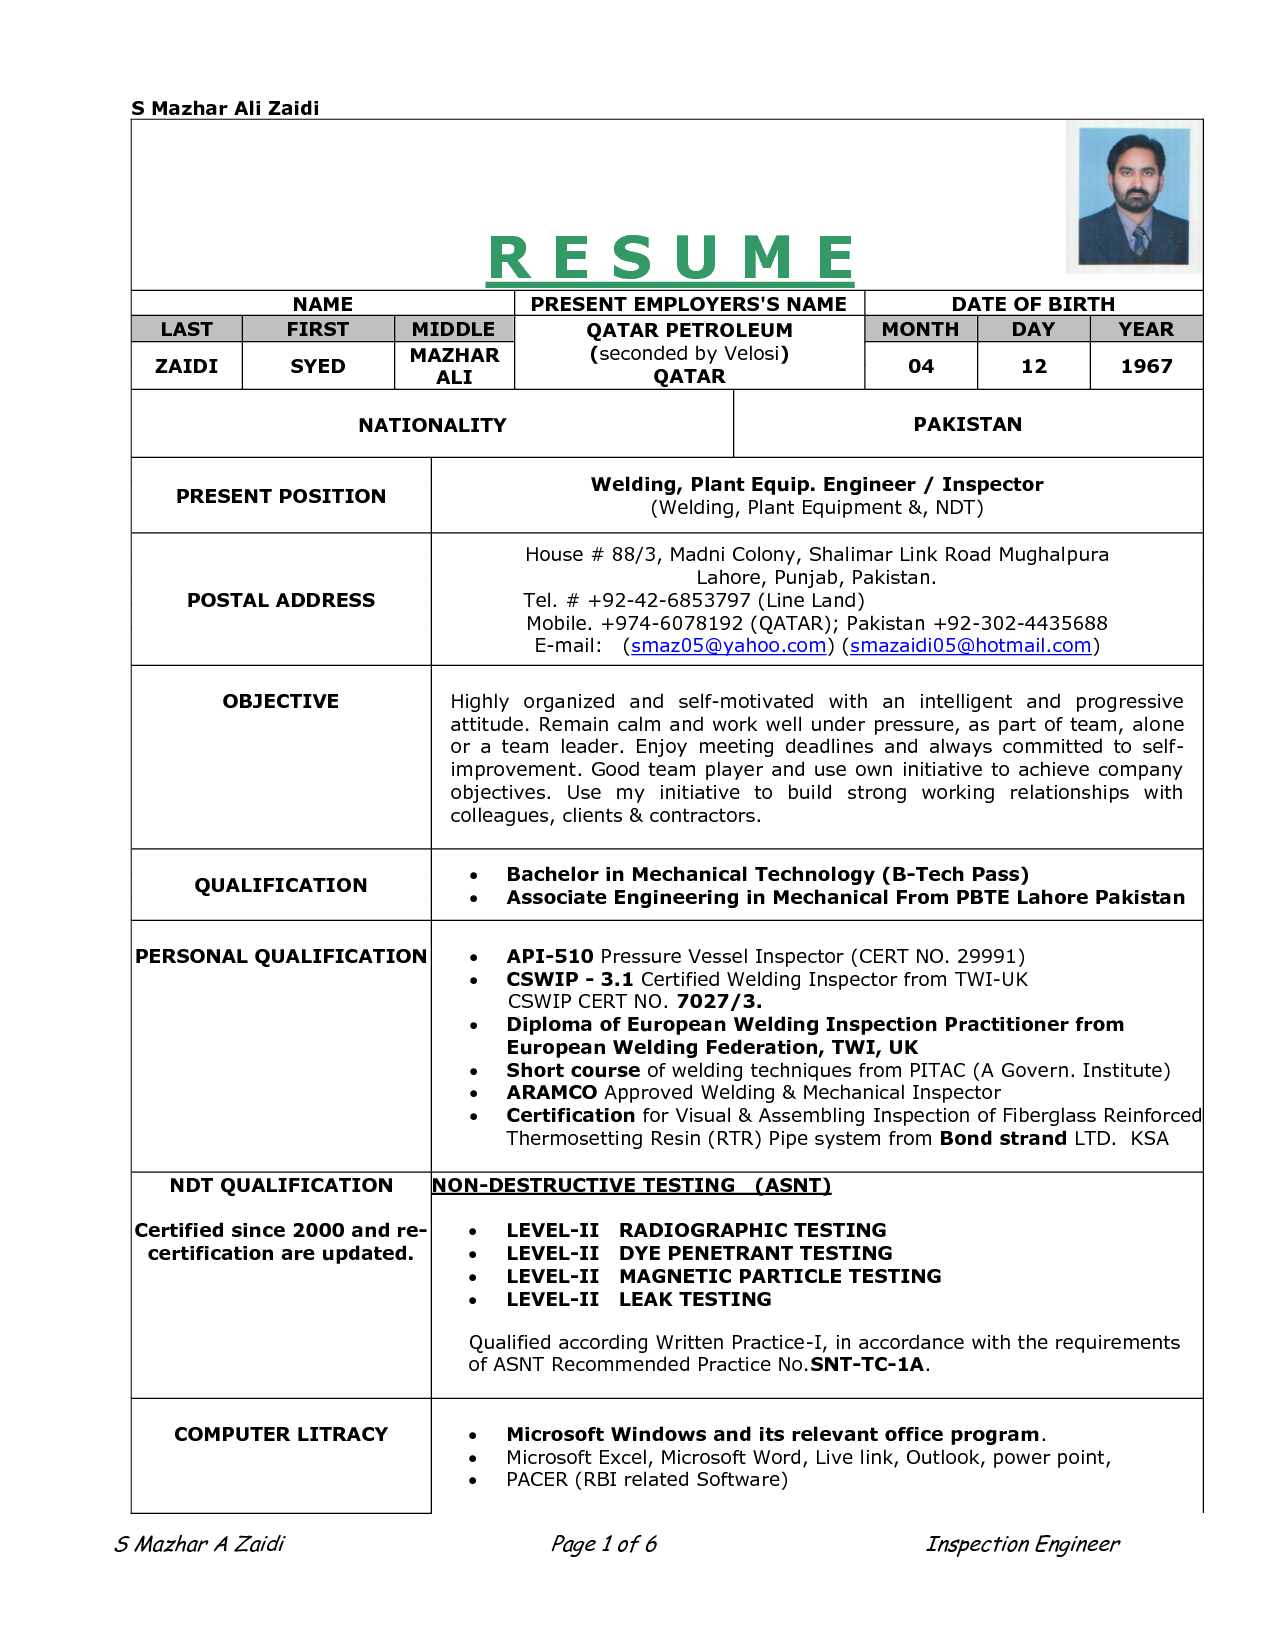 Re Work Procedure Resume.doc Download legal documents Re Work ...